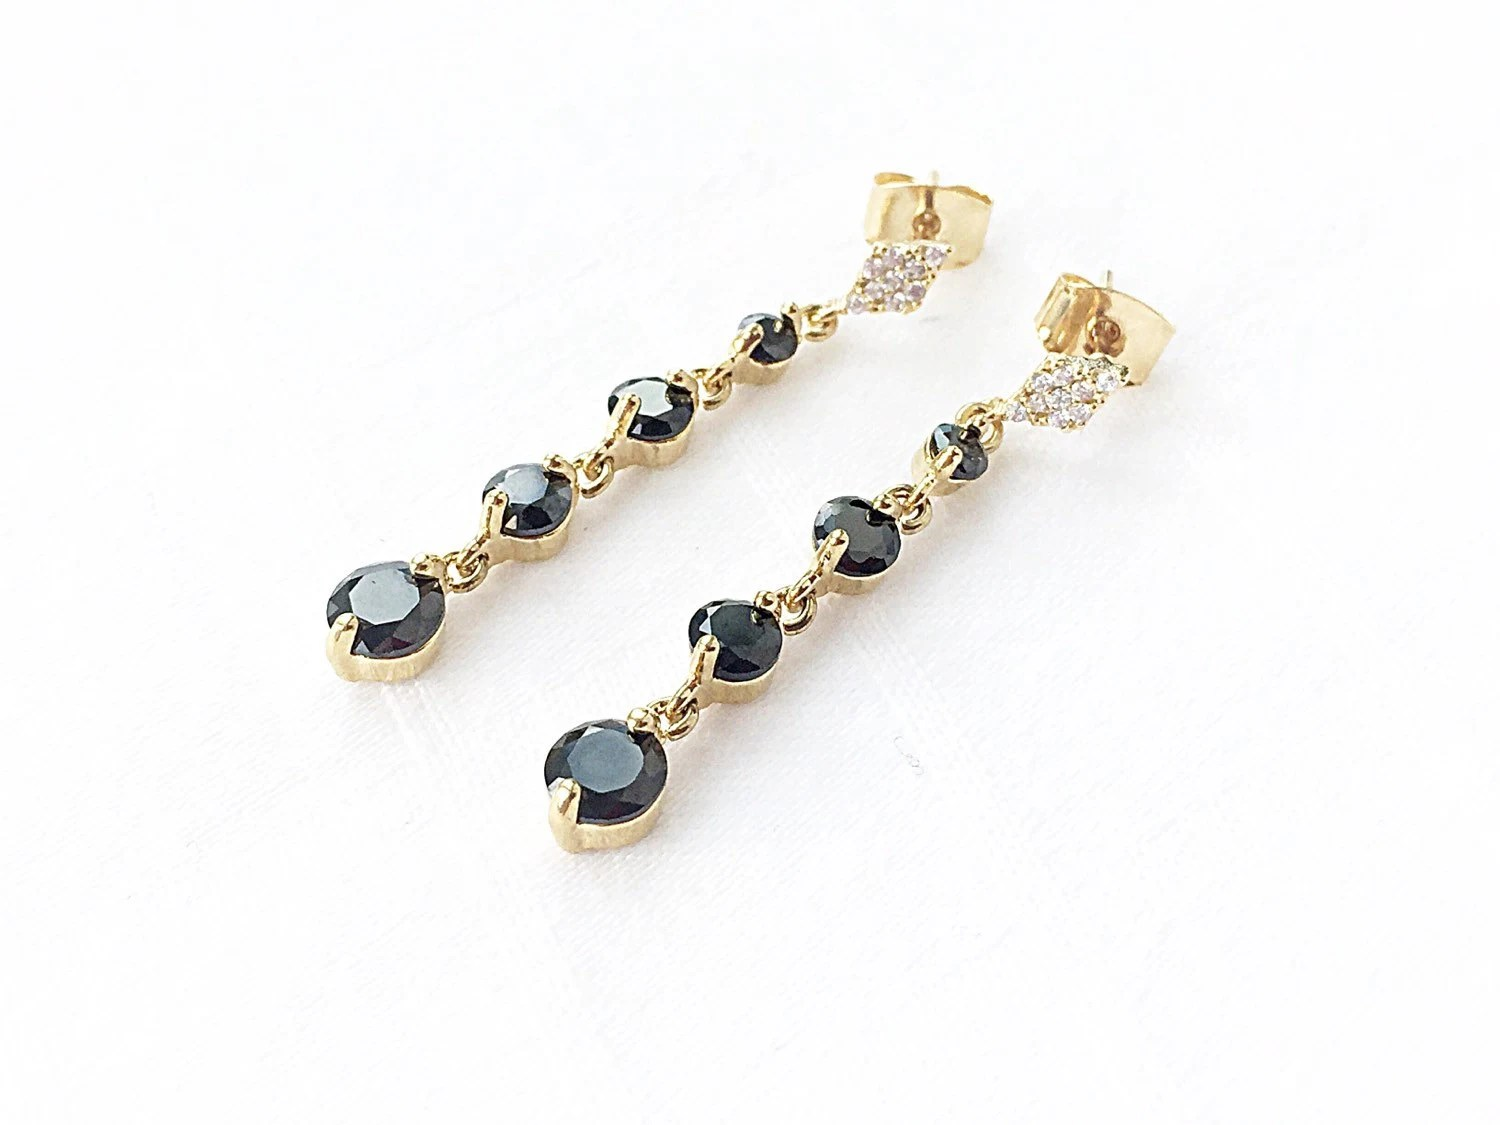 Long Earrings Black Earrings Gold Stud Earrings Dangle